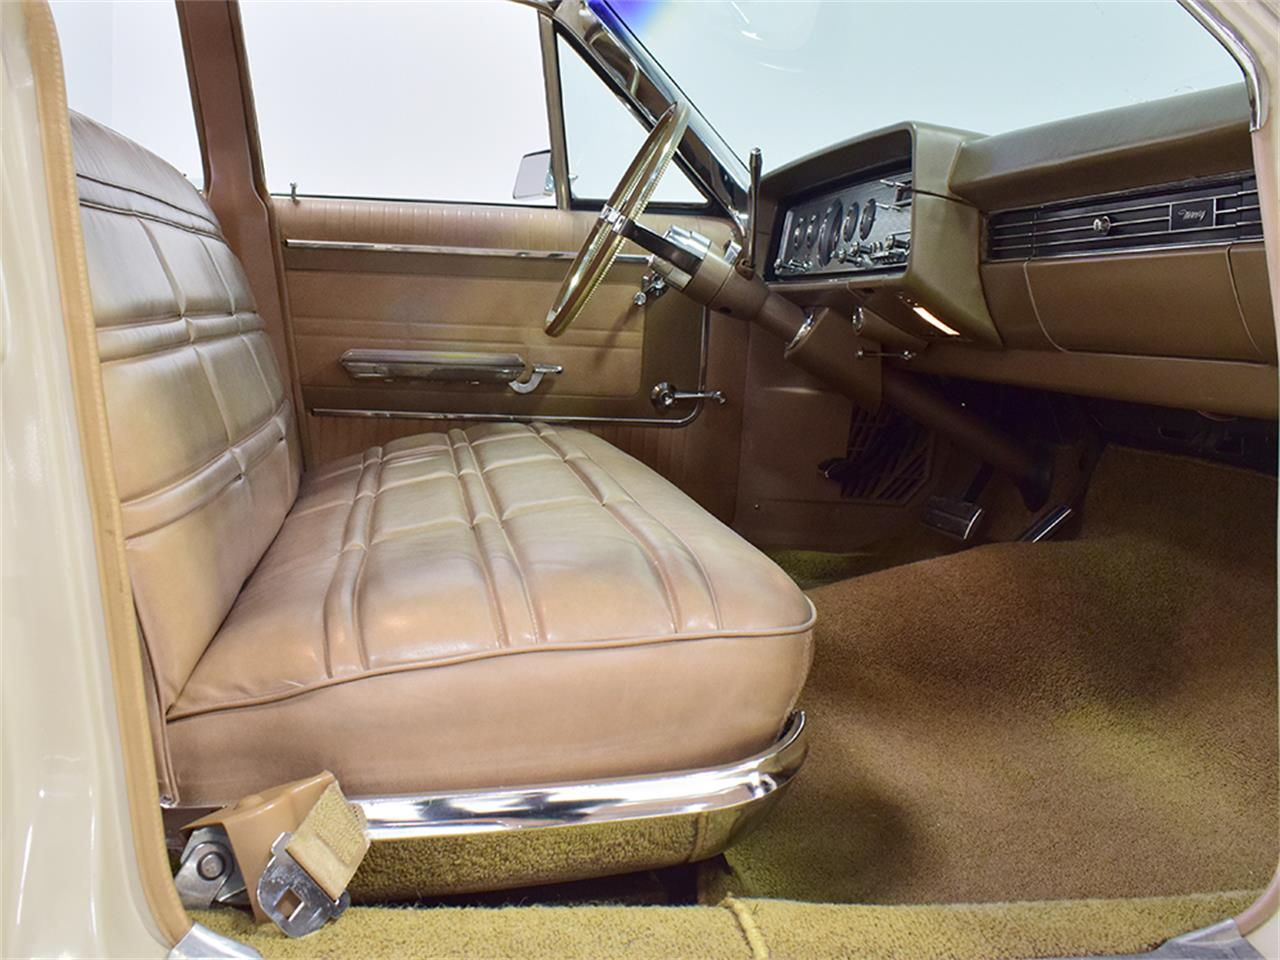 1965 Mercury Montclair for sale in Macedonia, OH – photo 55